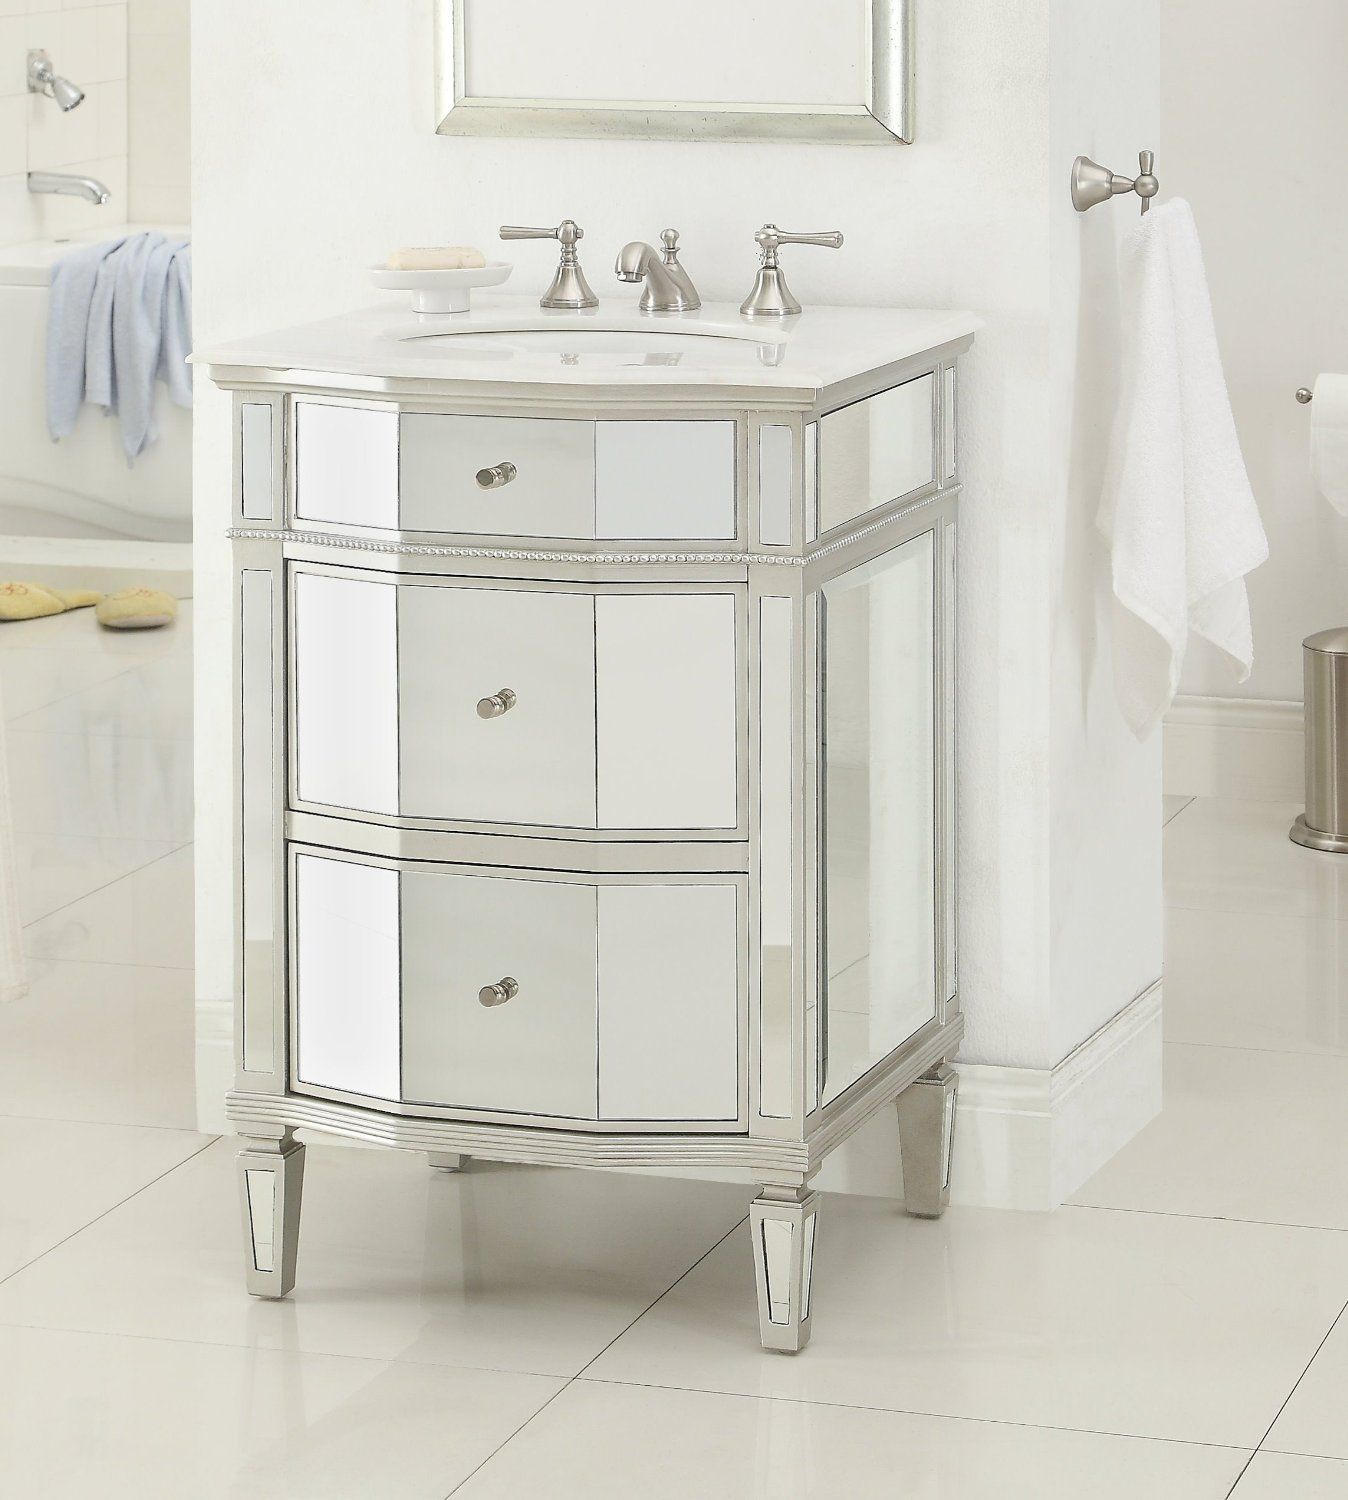 Bathroom Cabinets Home Depot Bathroom Cabinets Home Depot Canada